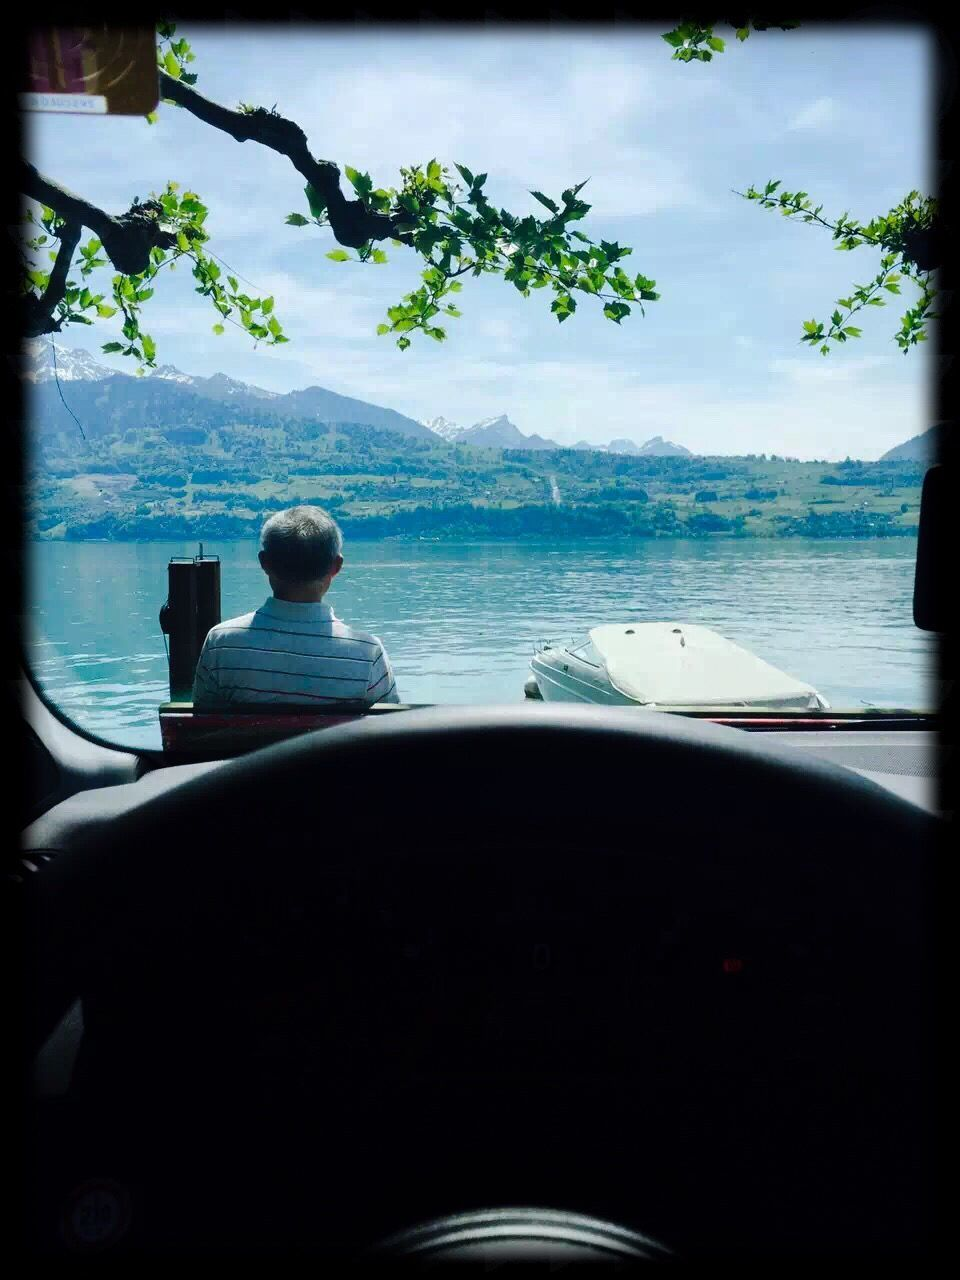 transportation, mode of transport, steering wheel, car, travel, water, day, journey, nature, sea, car interior, sky, scenics, beauty in nature, no people, nautical vessel, tree, close-up, outdoors